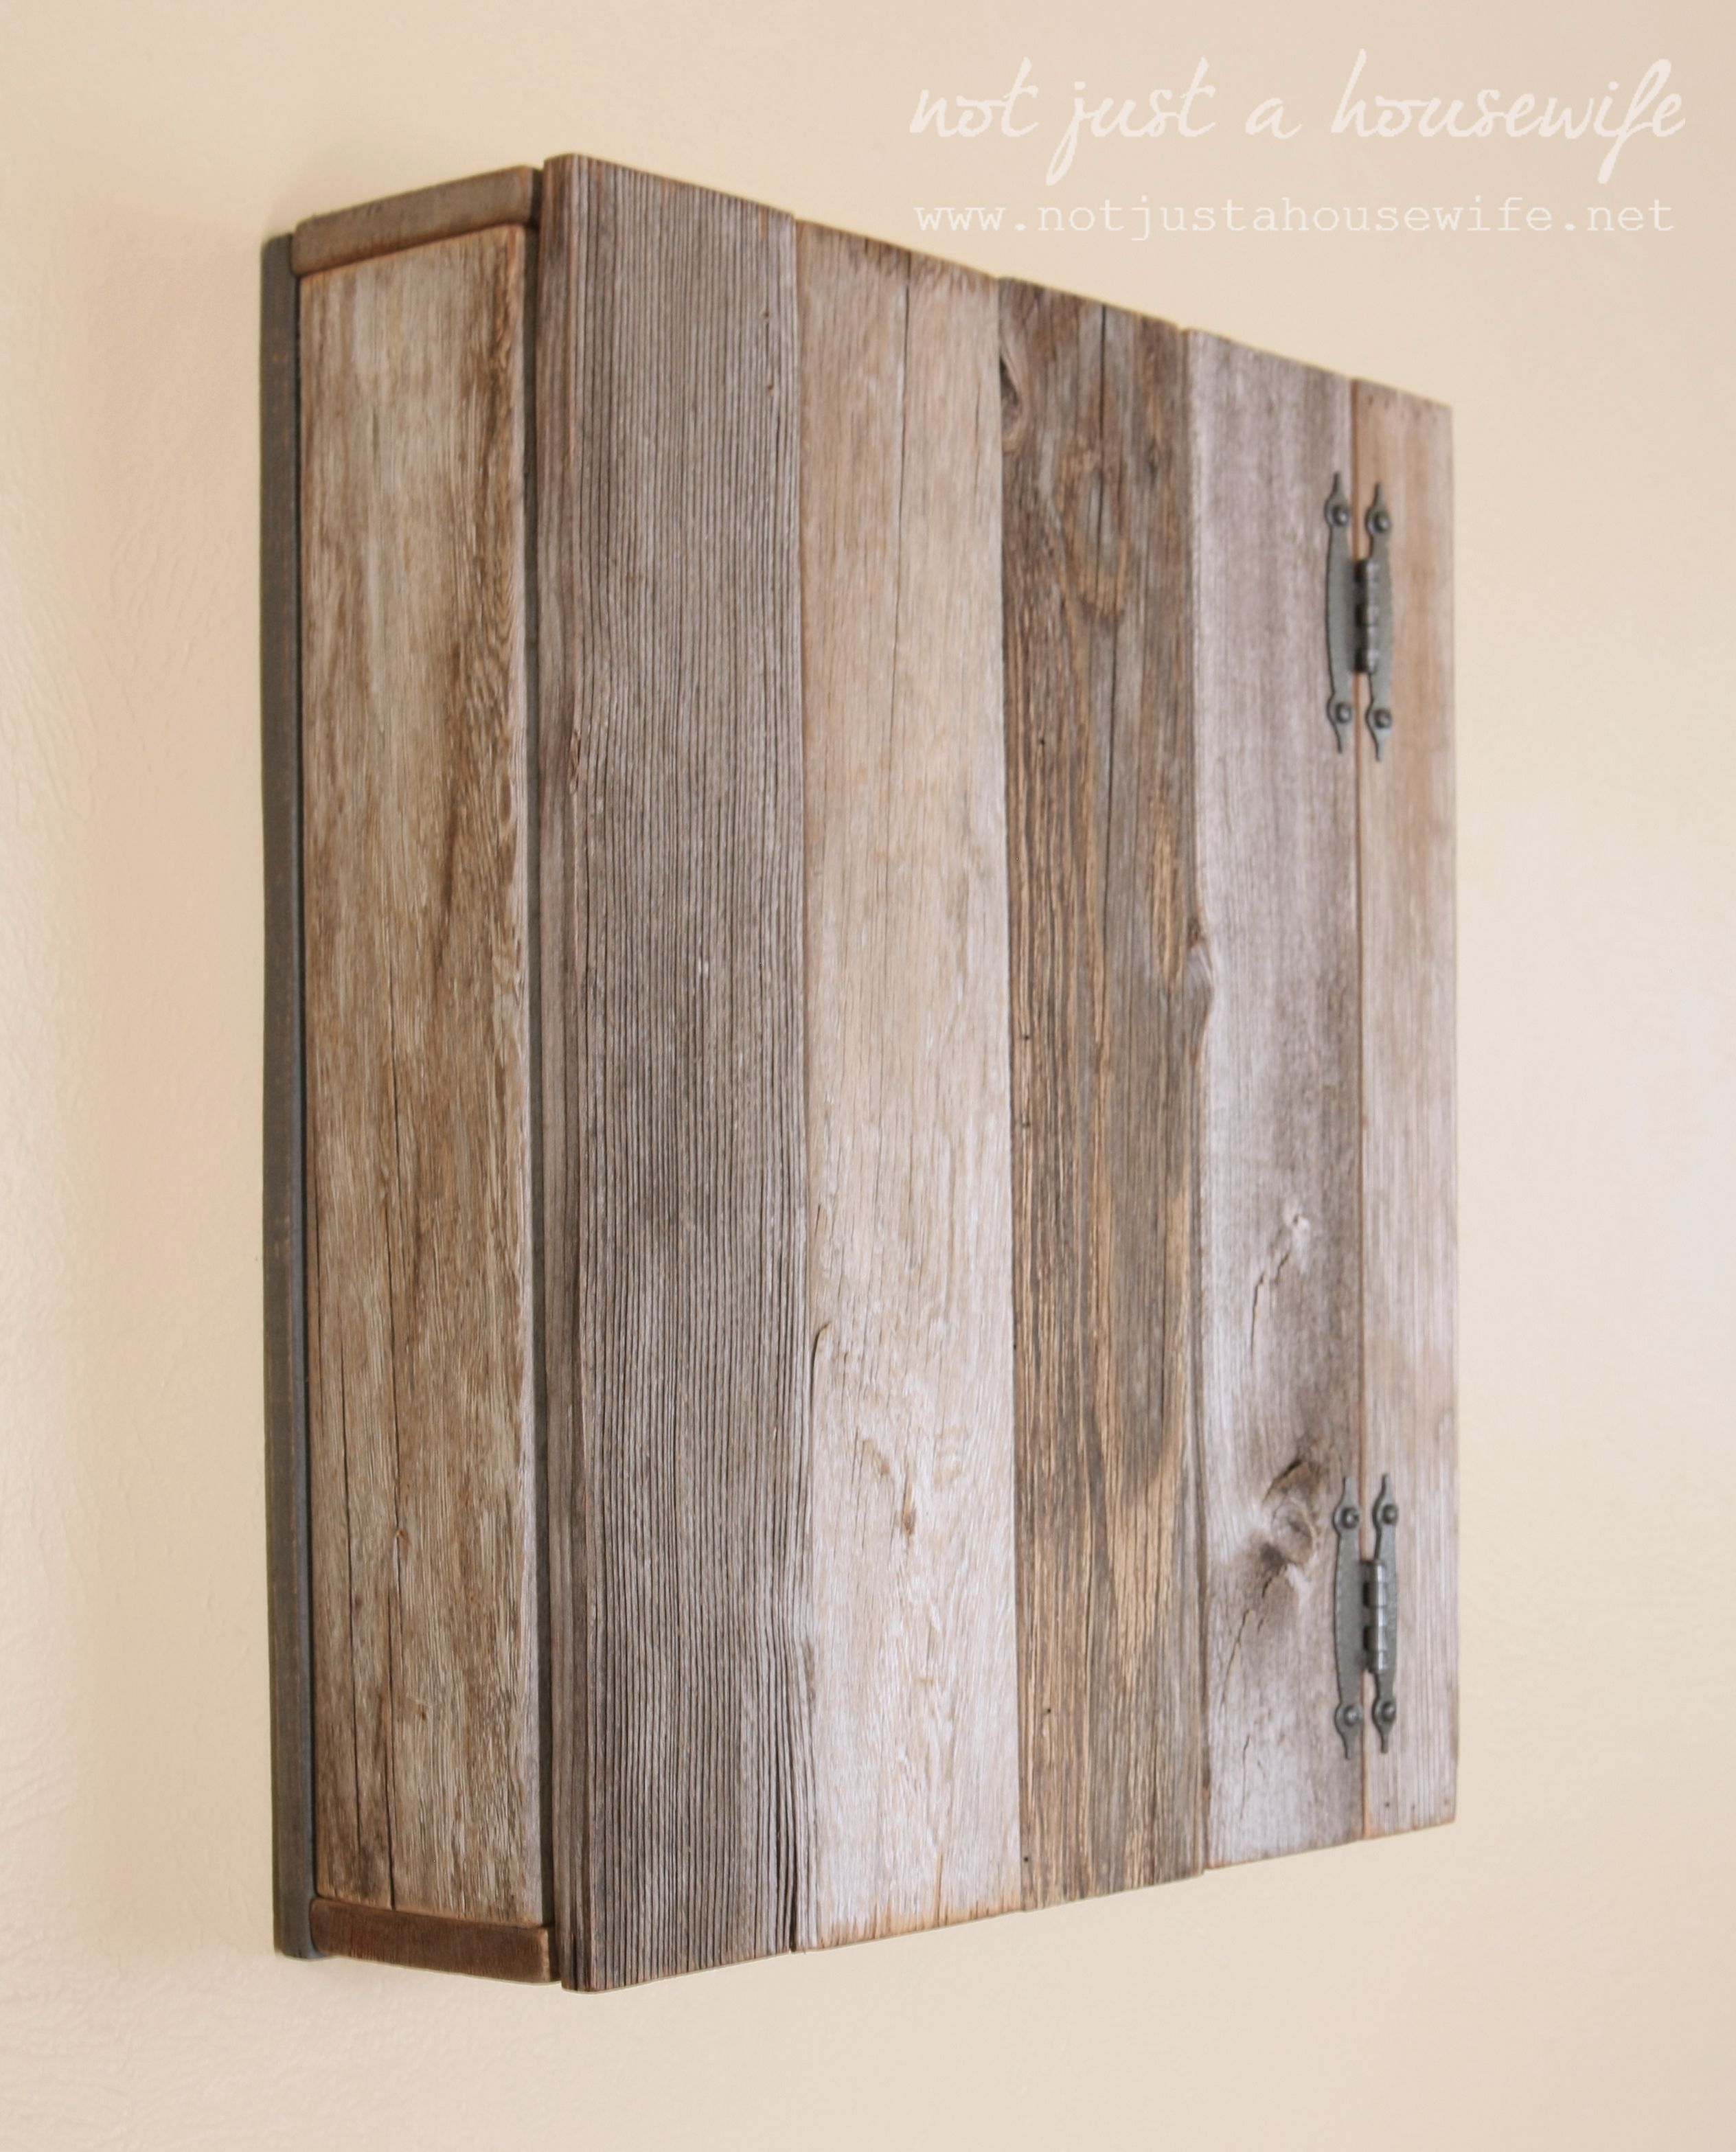 Merveilleux Take A Look At This Cupboard Made Out Of Old Fence Pickets. Stacy, Of Not  Just Au2026